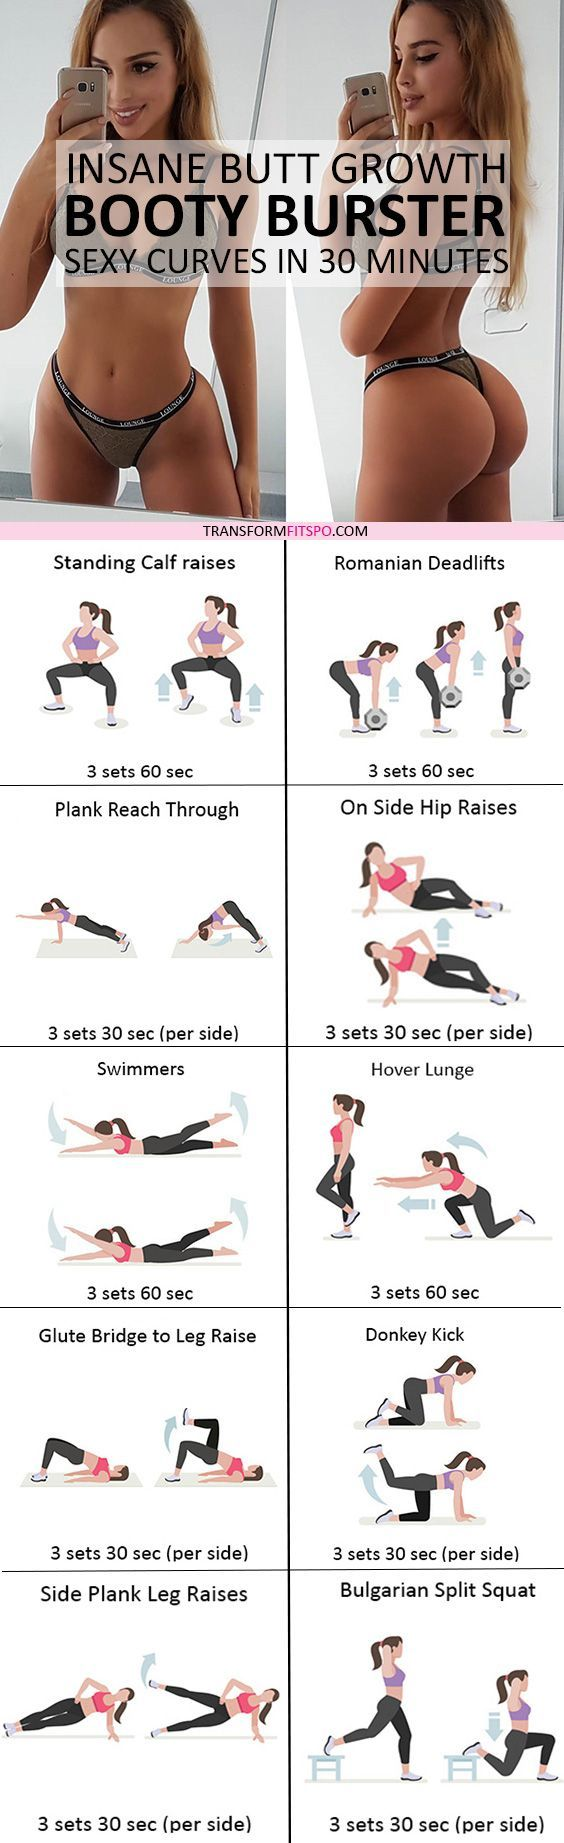 #womensworkout #workout #femalefitness Repin and share if this workout gave you insane butt growth! Click the pin for the full workout.